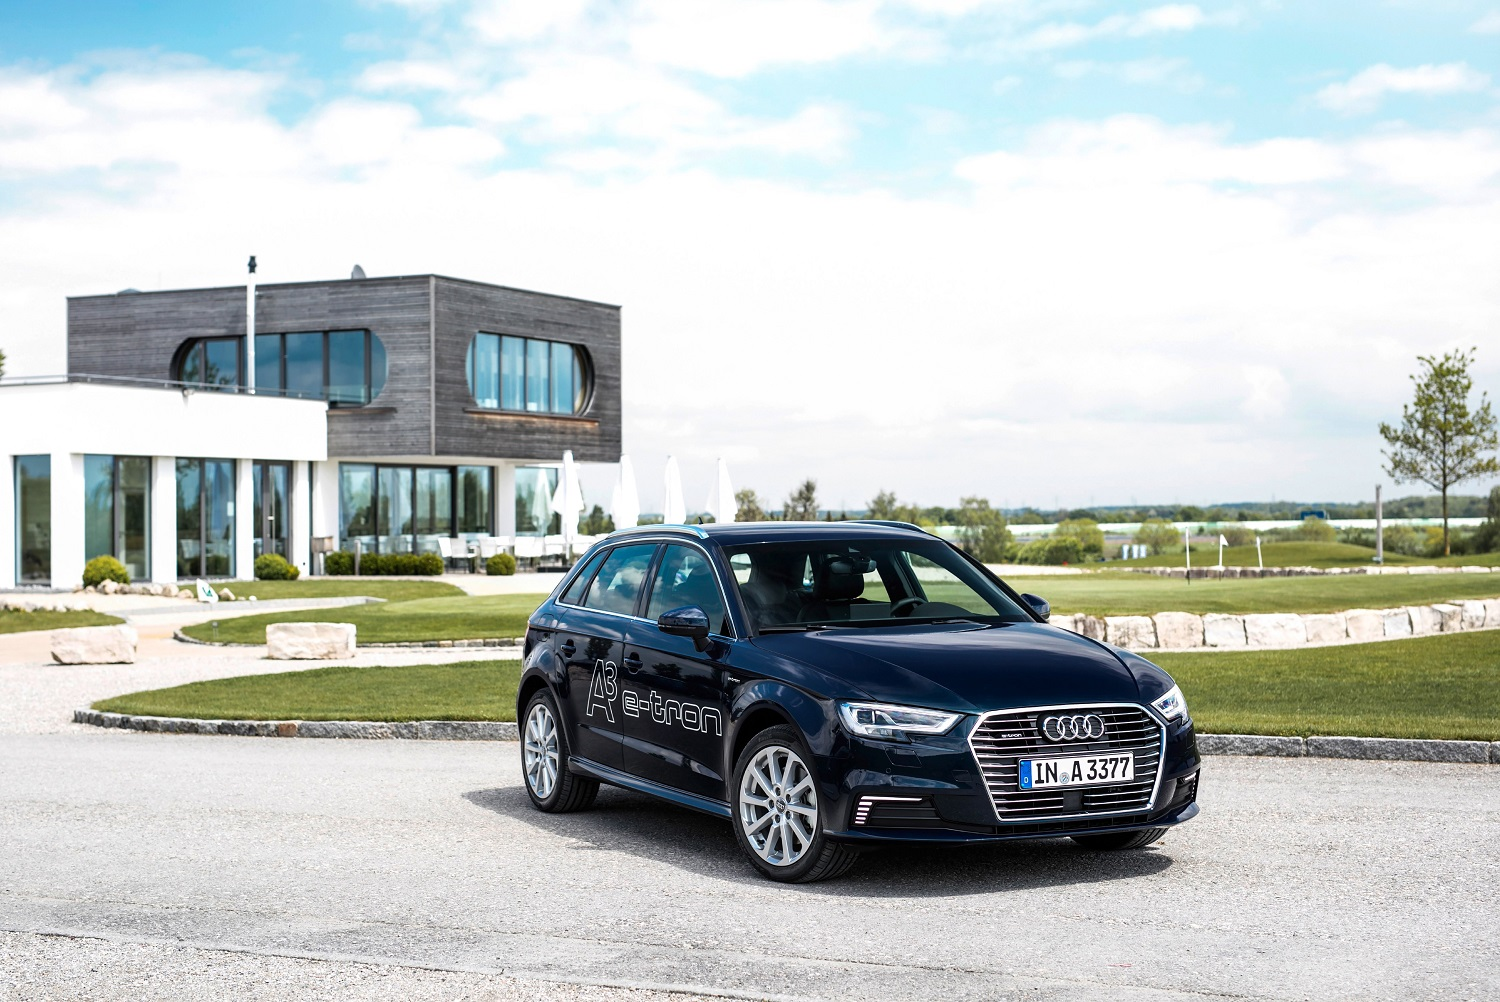 Audi's 2017 A3 e-tron goes high tech, still easy on fuel